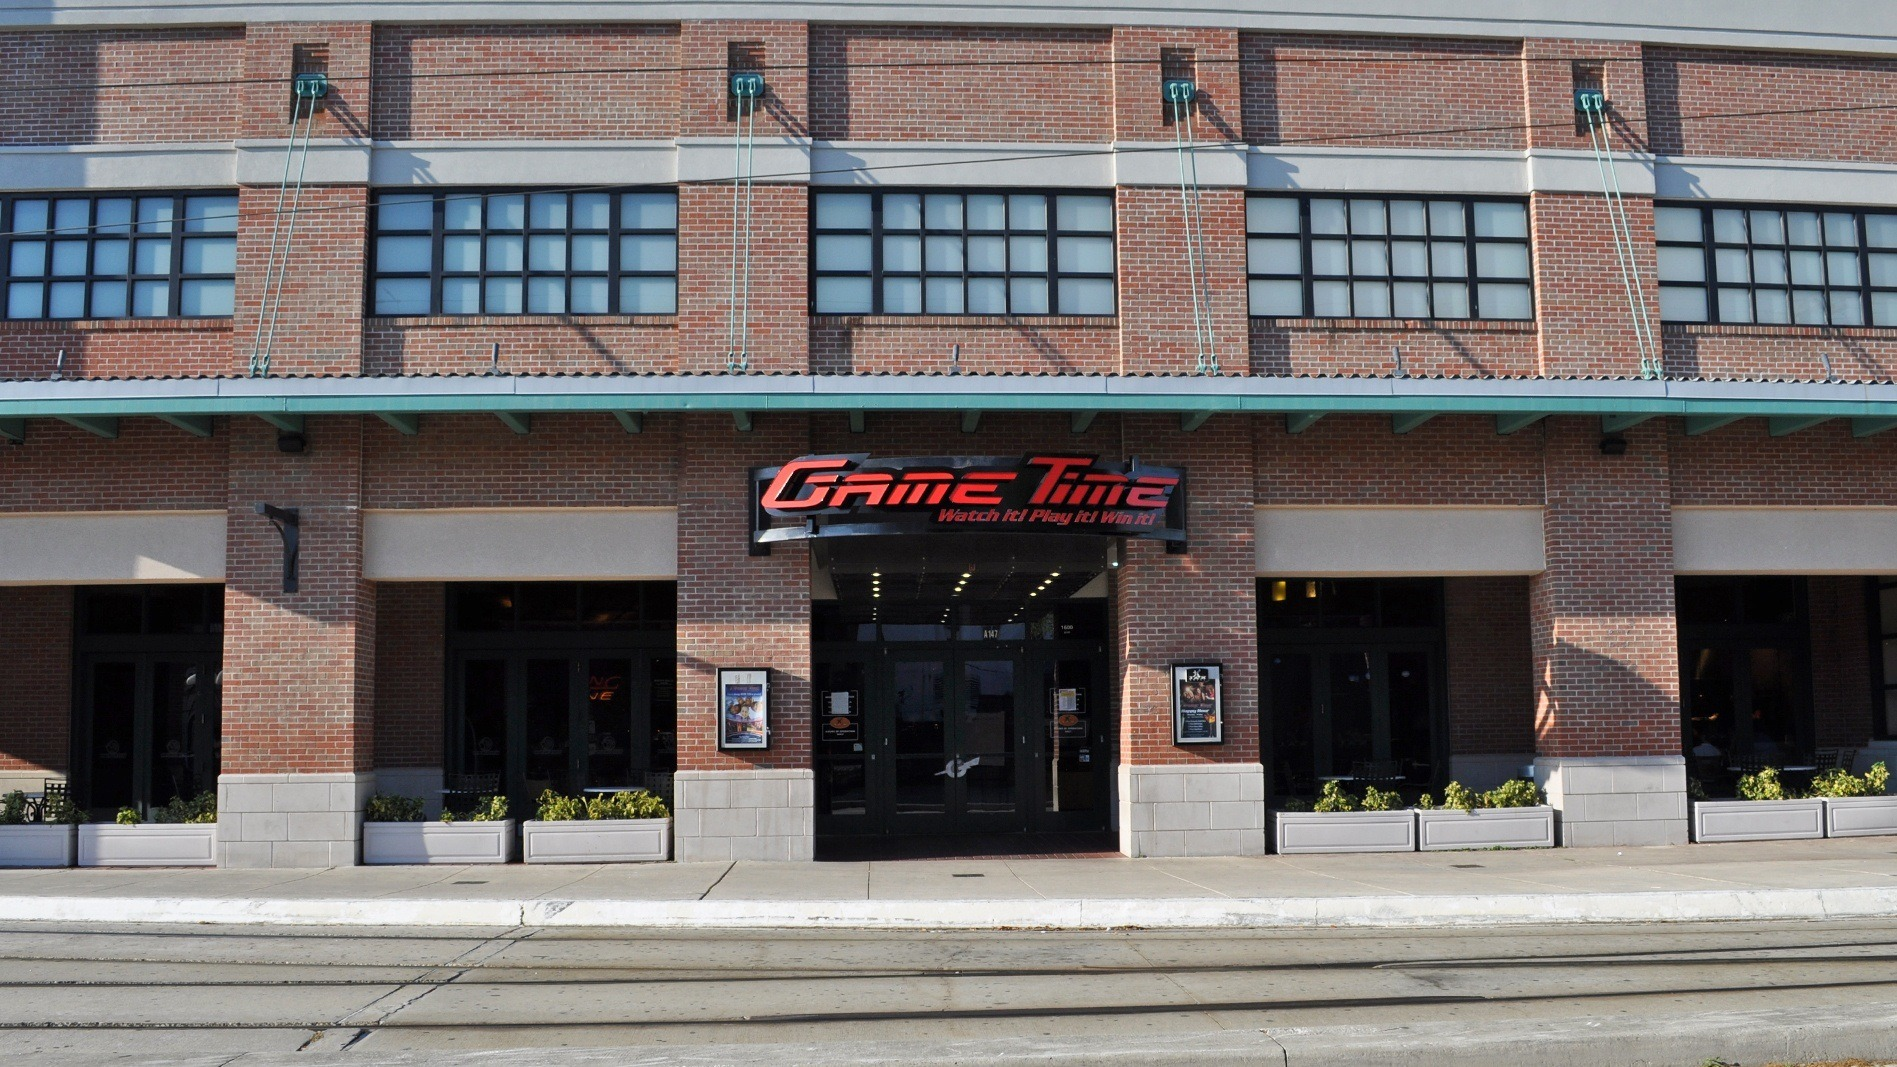 GameTime Tampa Ybor City Centro Ybor full entrance view